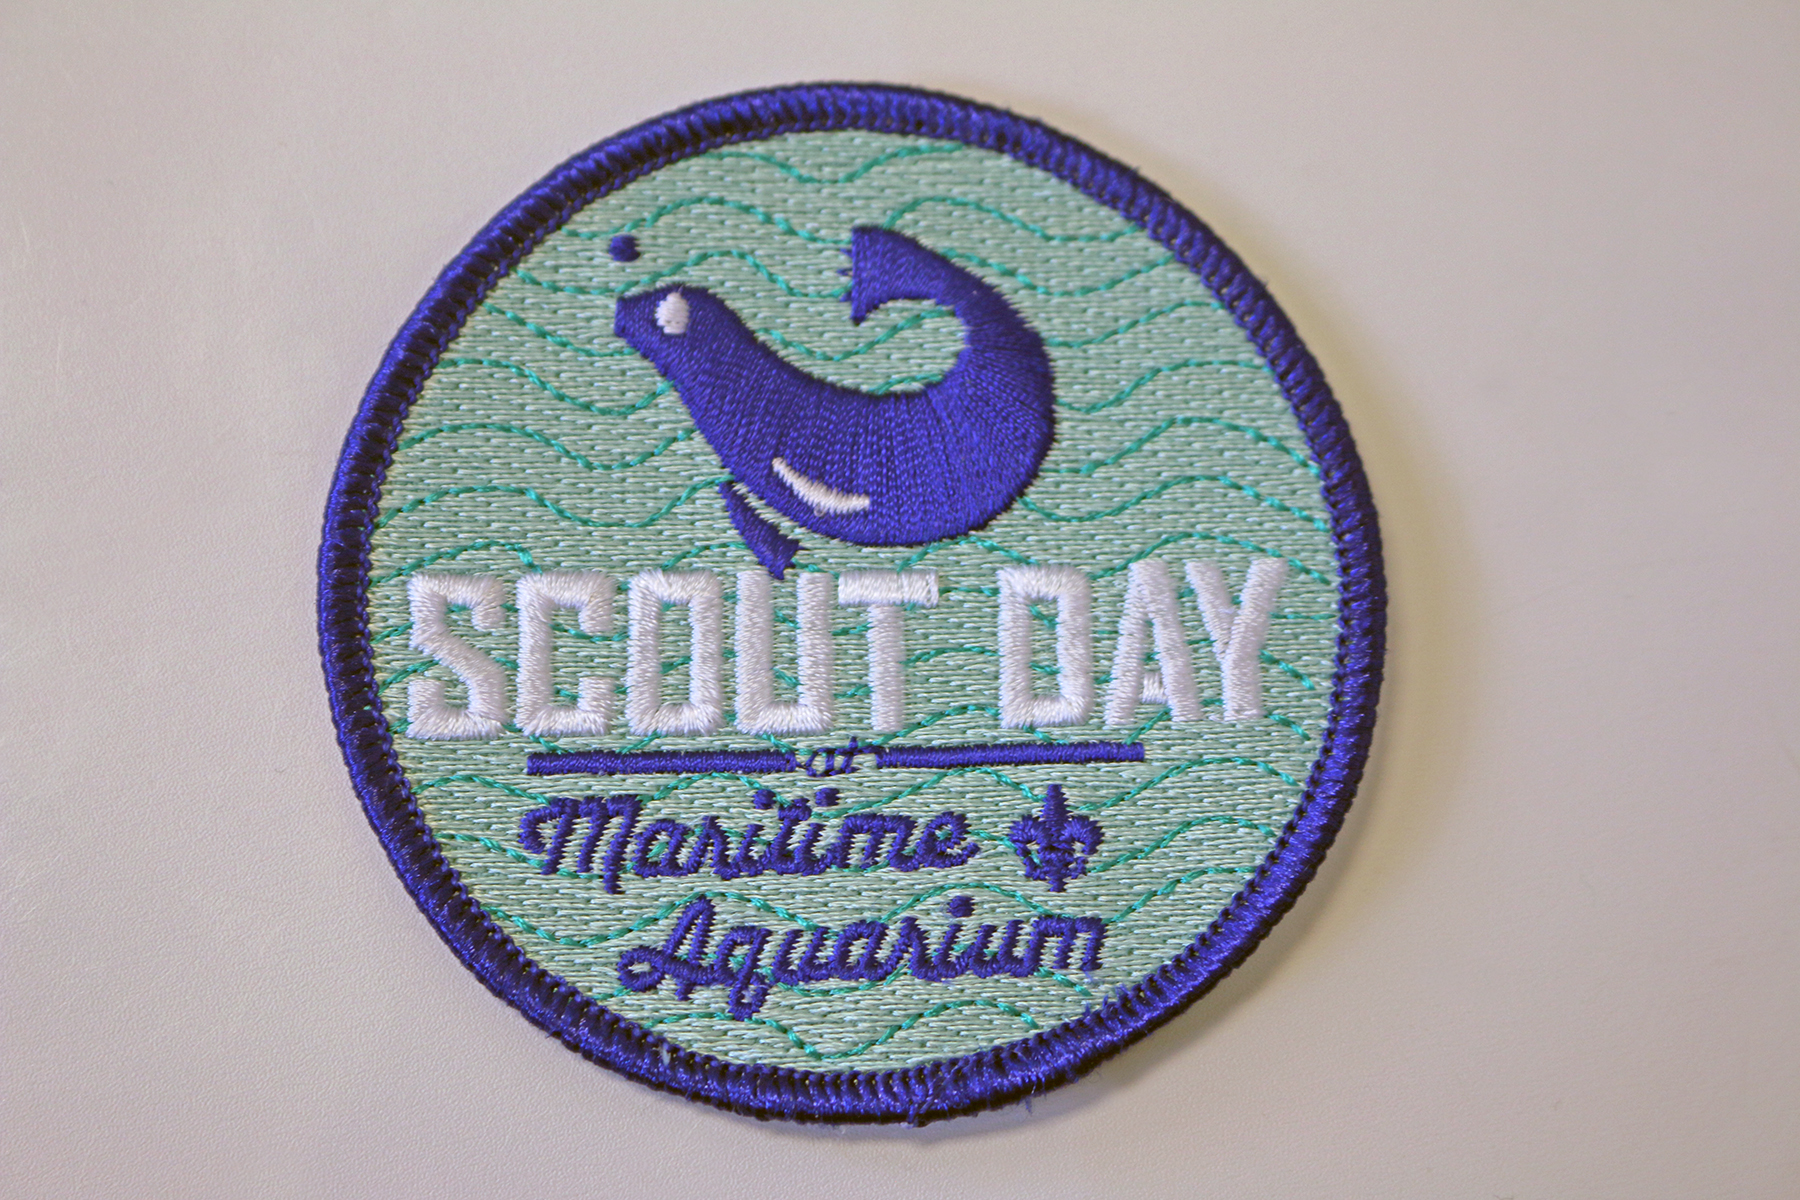 Feb 3rd, to June 2nd, , have fun during thematic weeks and gain merit badges! Questions? Contact scouts@erlinelomanpu0mx.gq Members get a $5 discount .